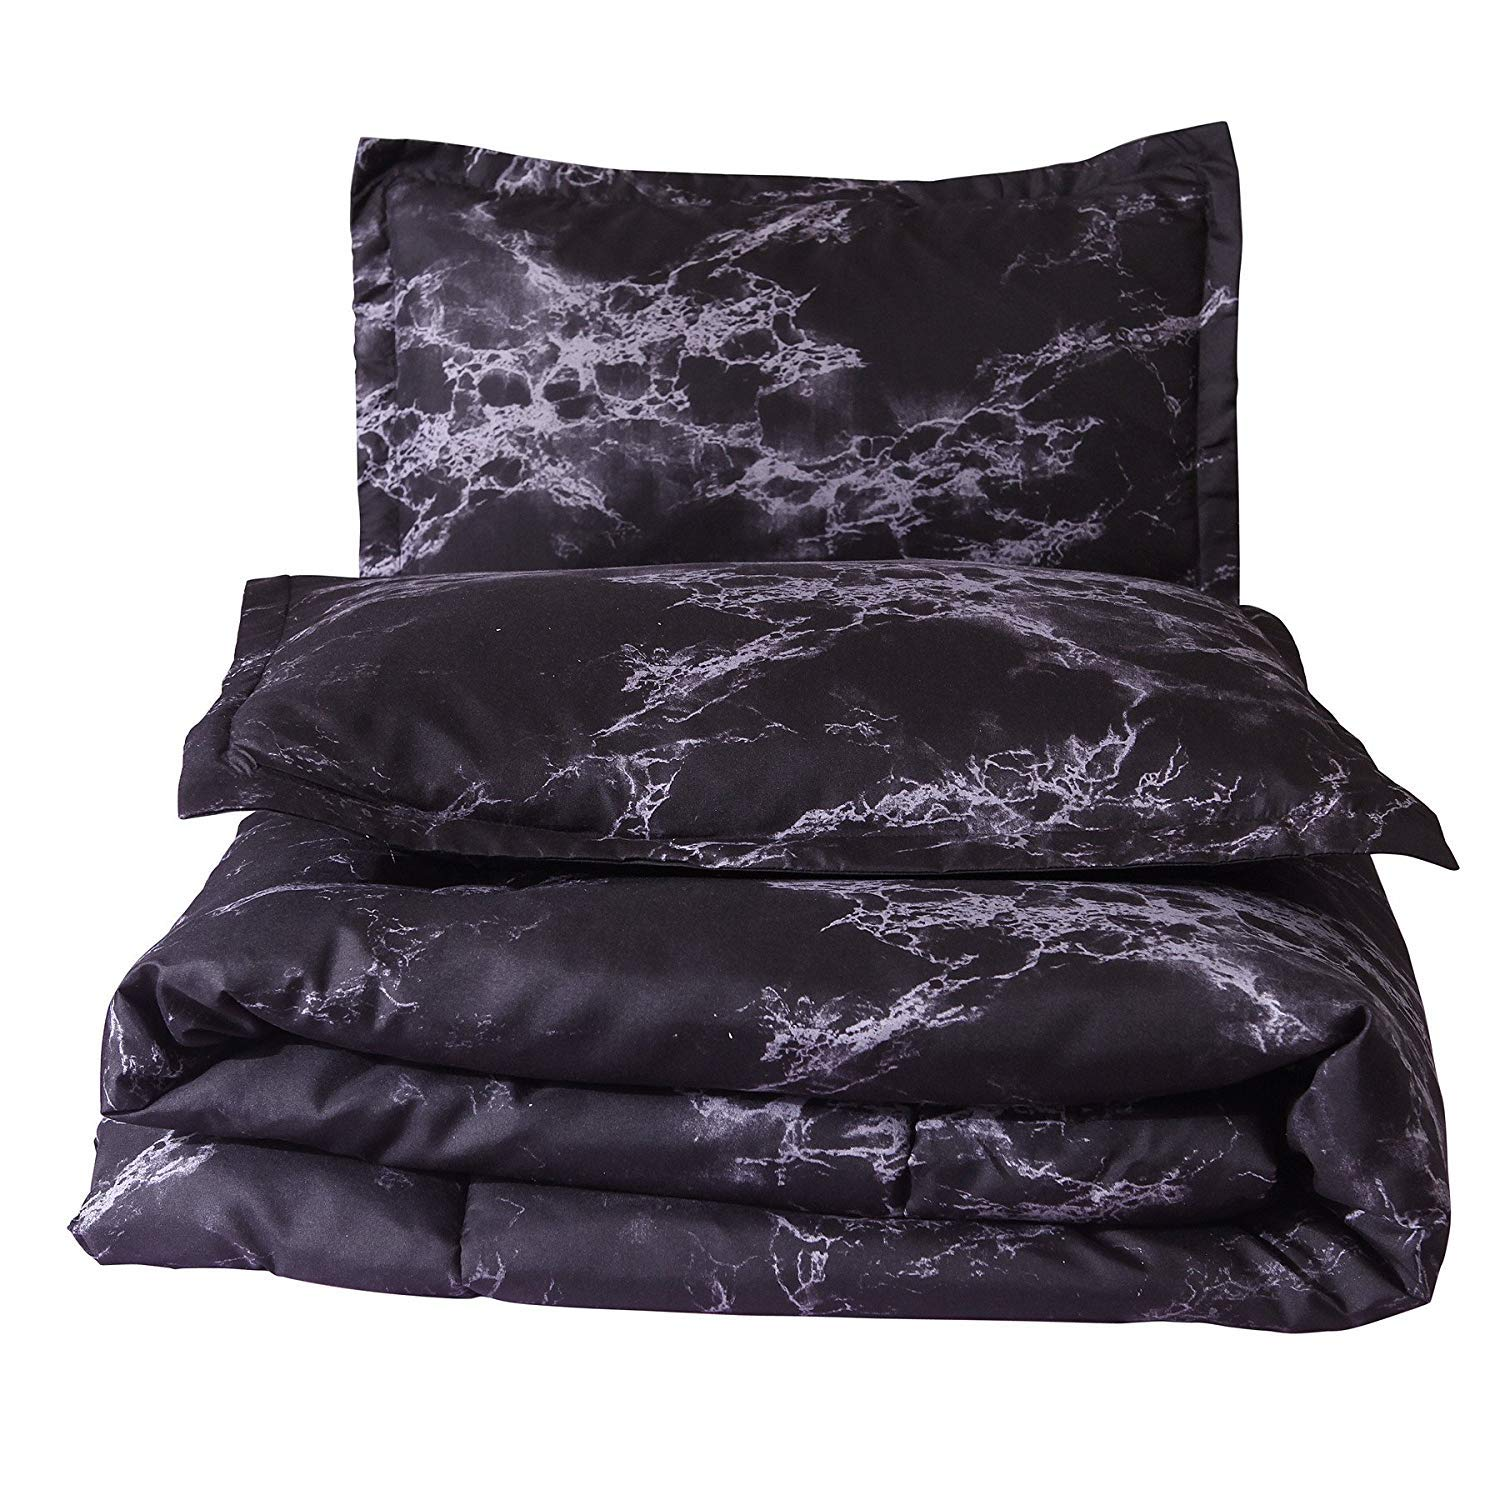 A Nice Night Closure-Printed Marble Ultra Soft Comforter Set Bed-in-a-Bag,Queen (Black-Marble)